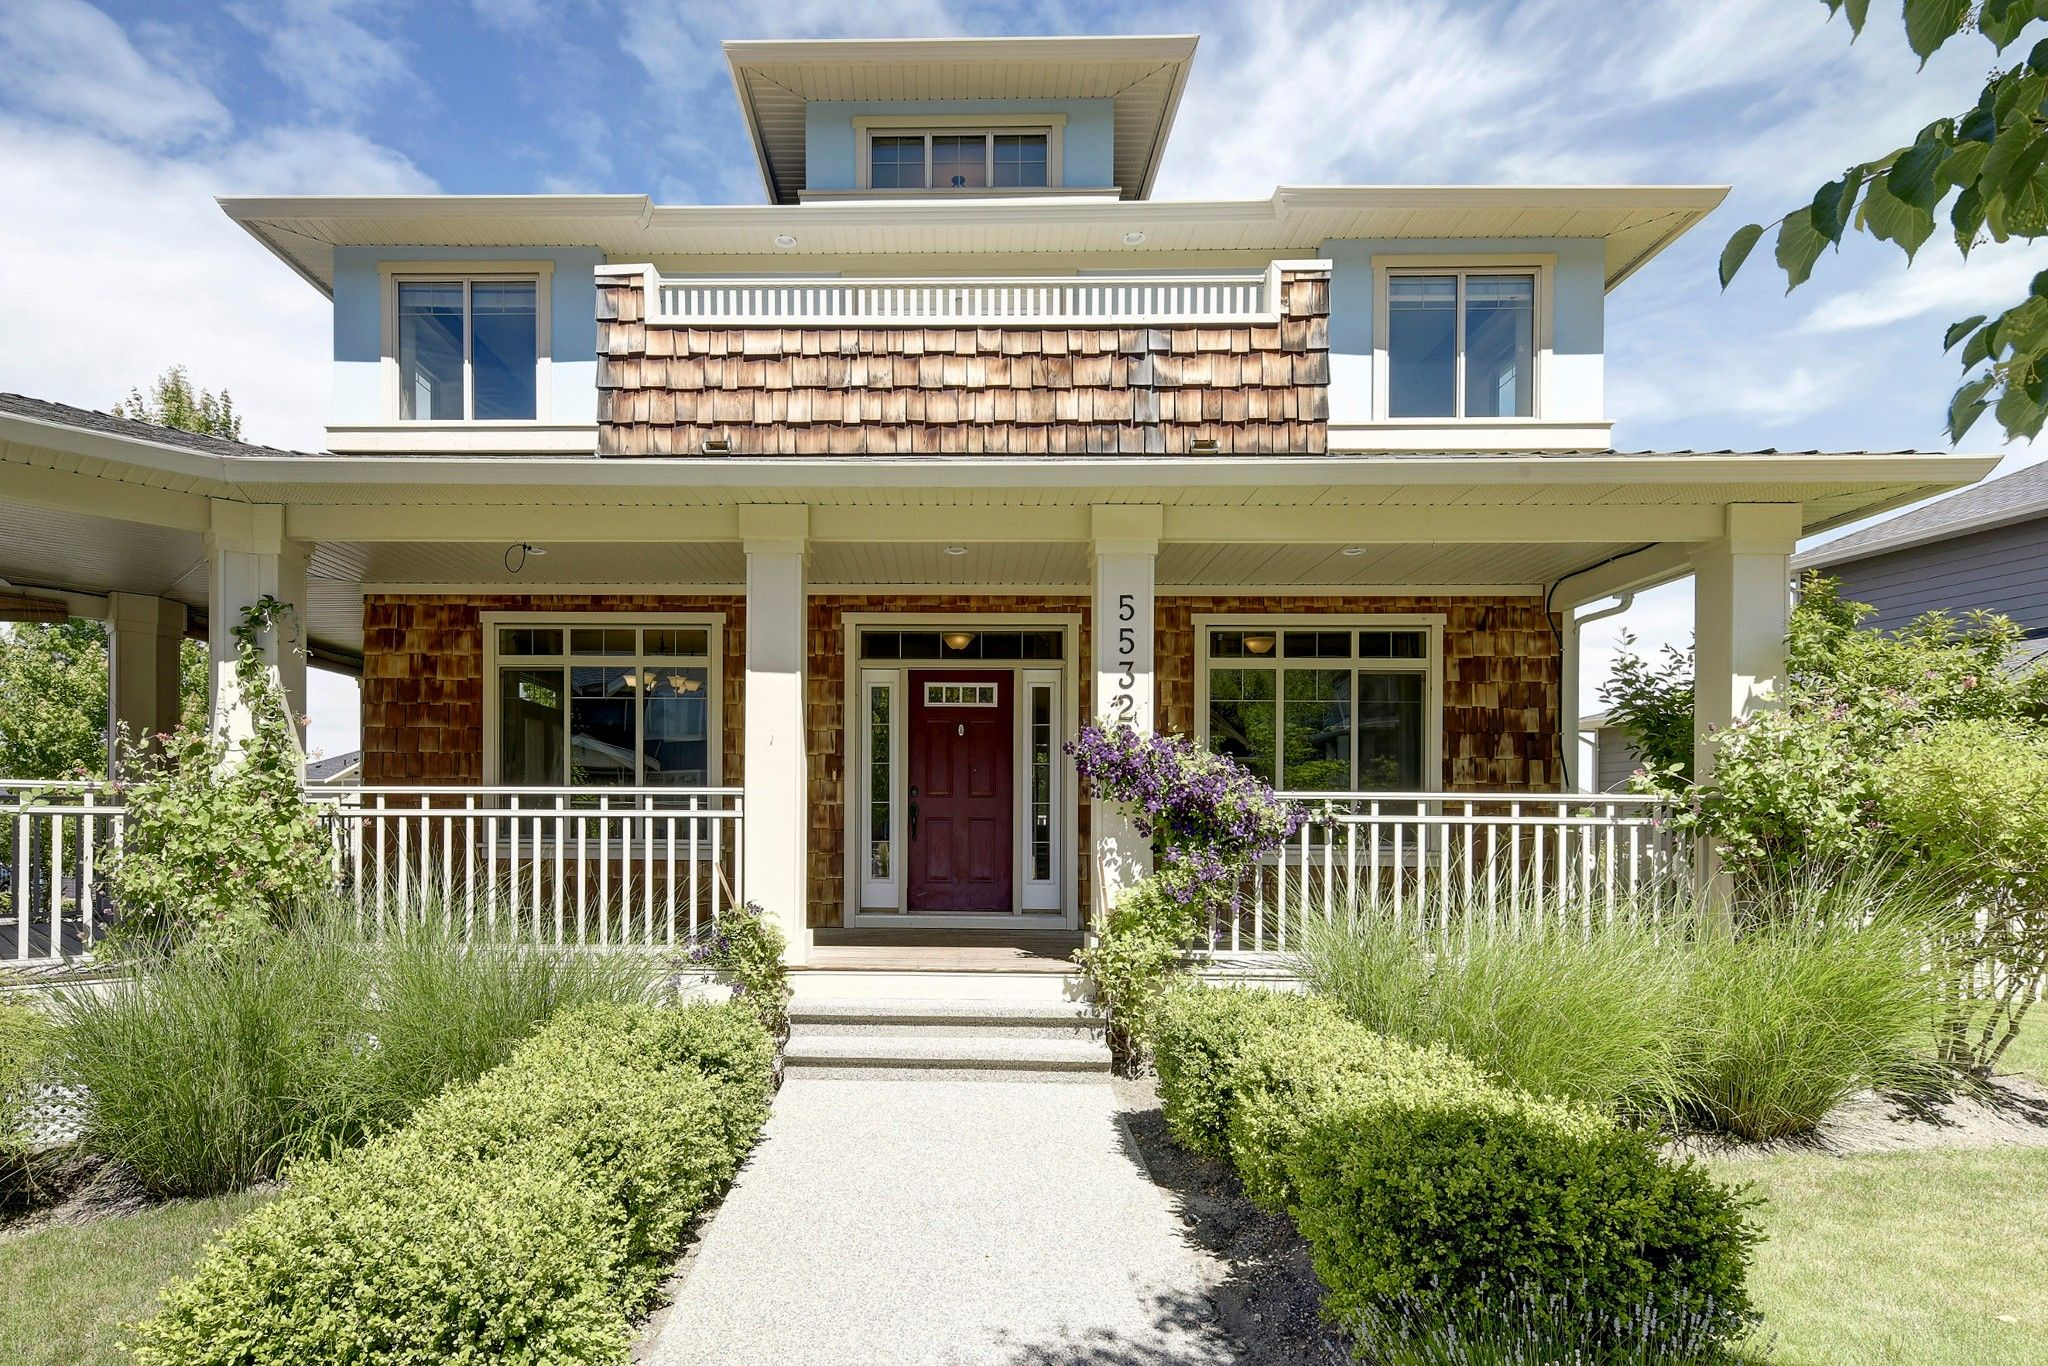 Main Photo: 5532 Farron Place in Kelowna: kettle valley House for sale (Central Okanagan)  : MLS®# 10208166